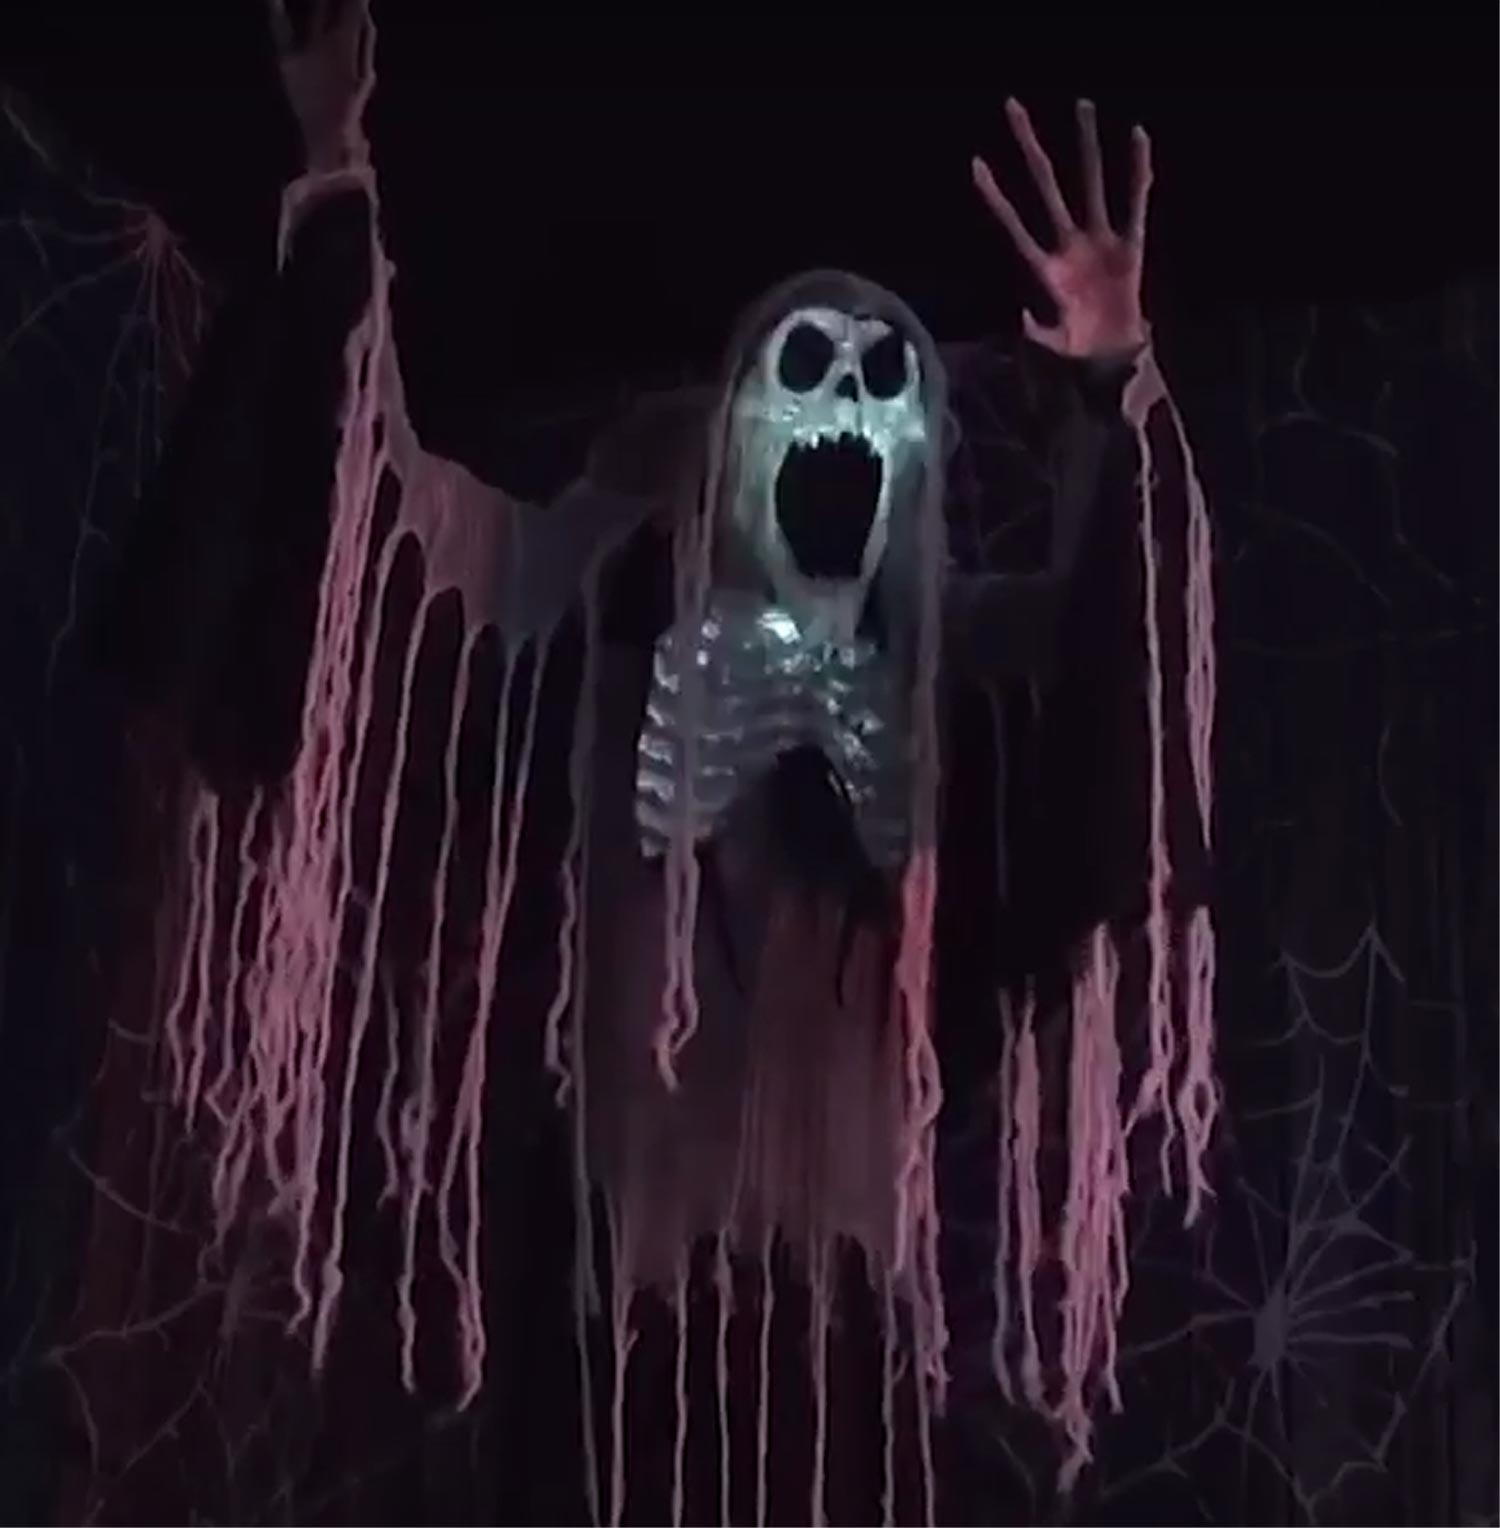 Standing Life Size Animated TOWERING WAILING SOUL Scary Phantom Spirit Gothic Ghost Halloween Creepy Haunted House